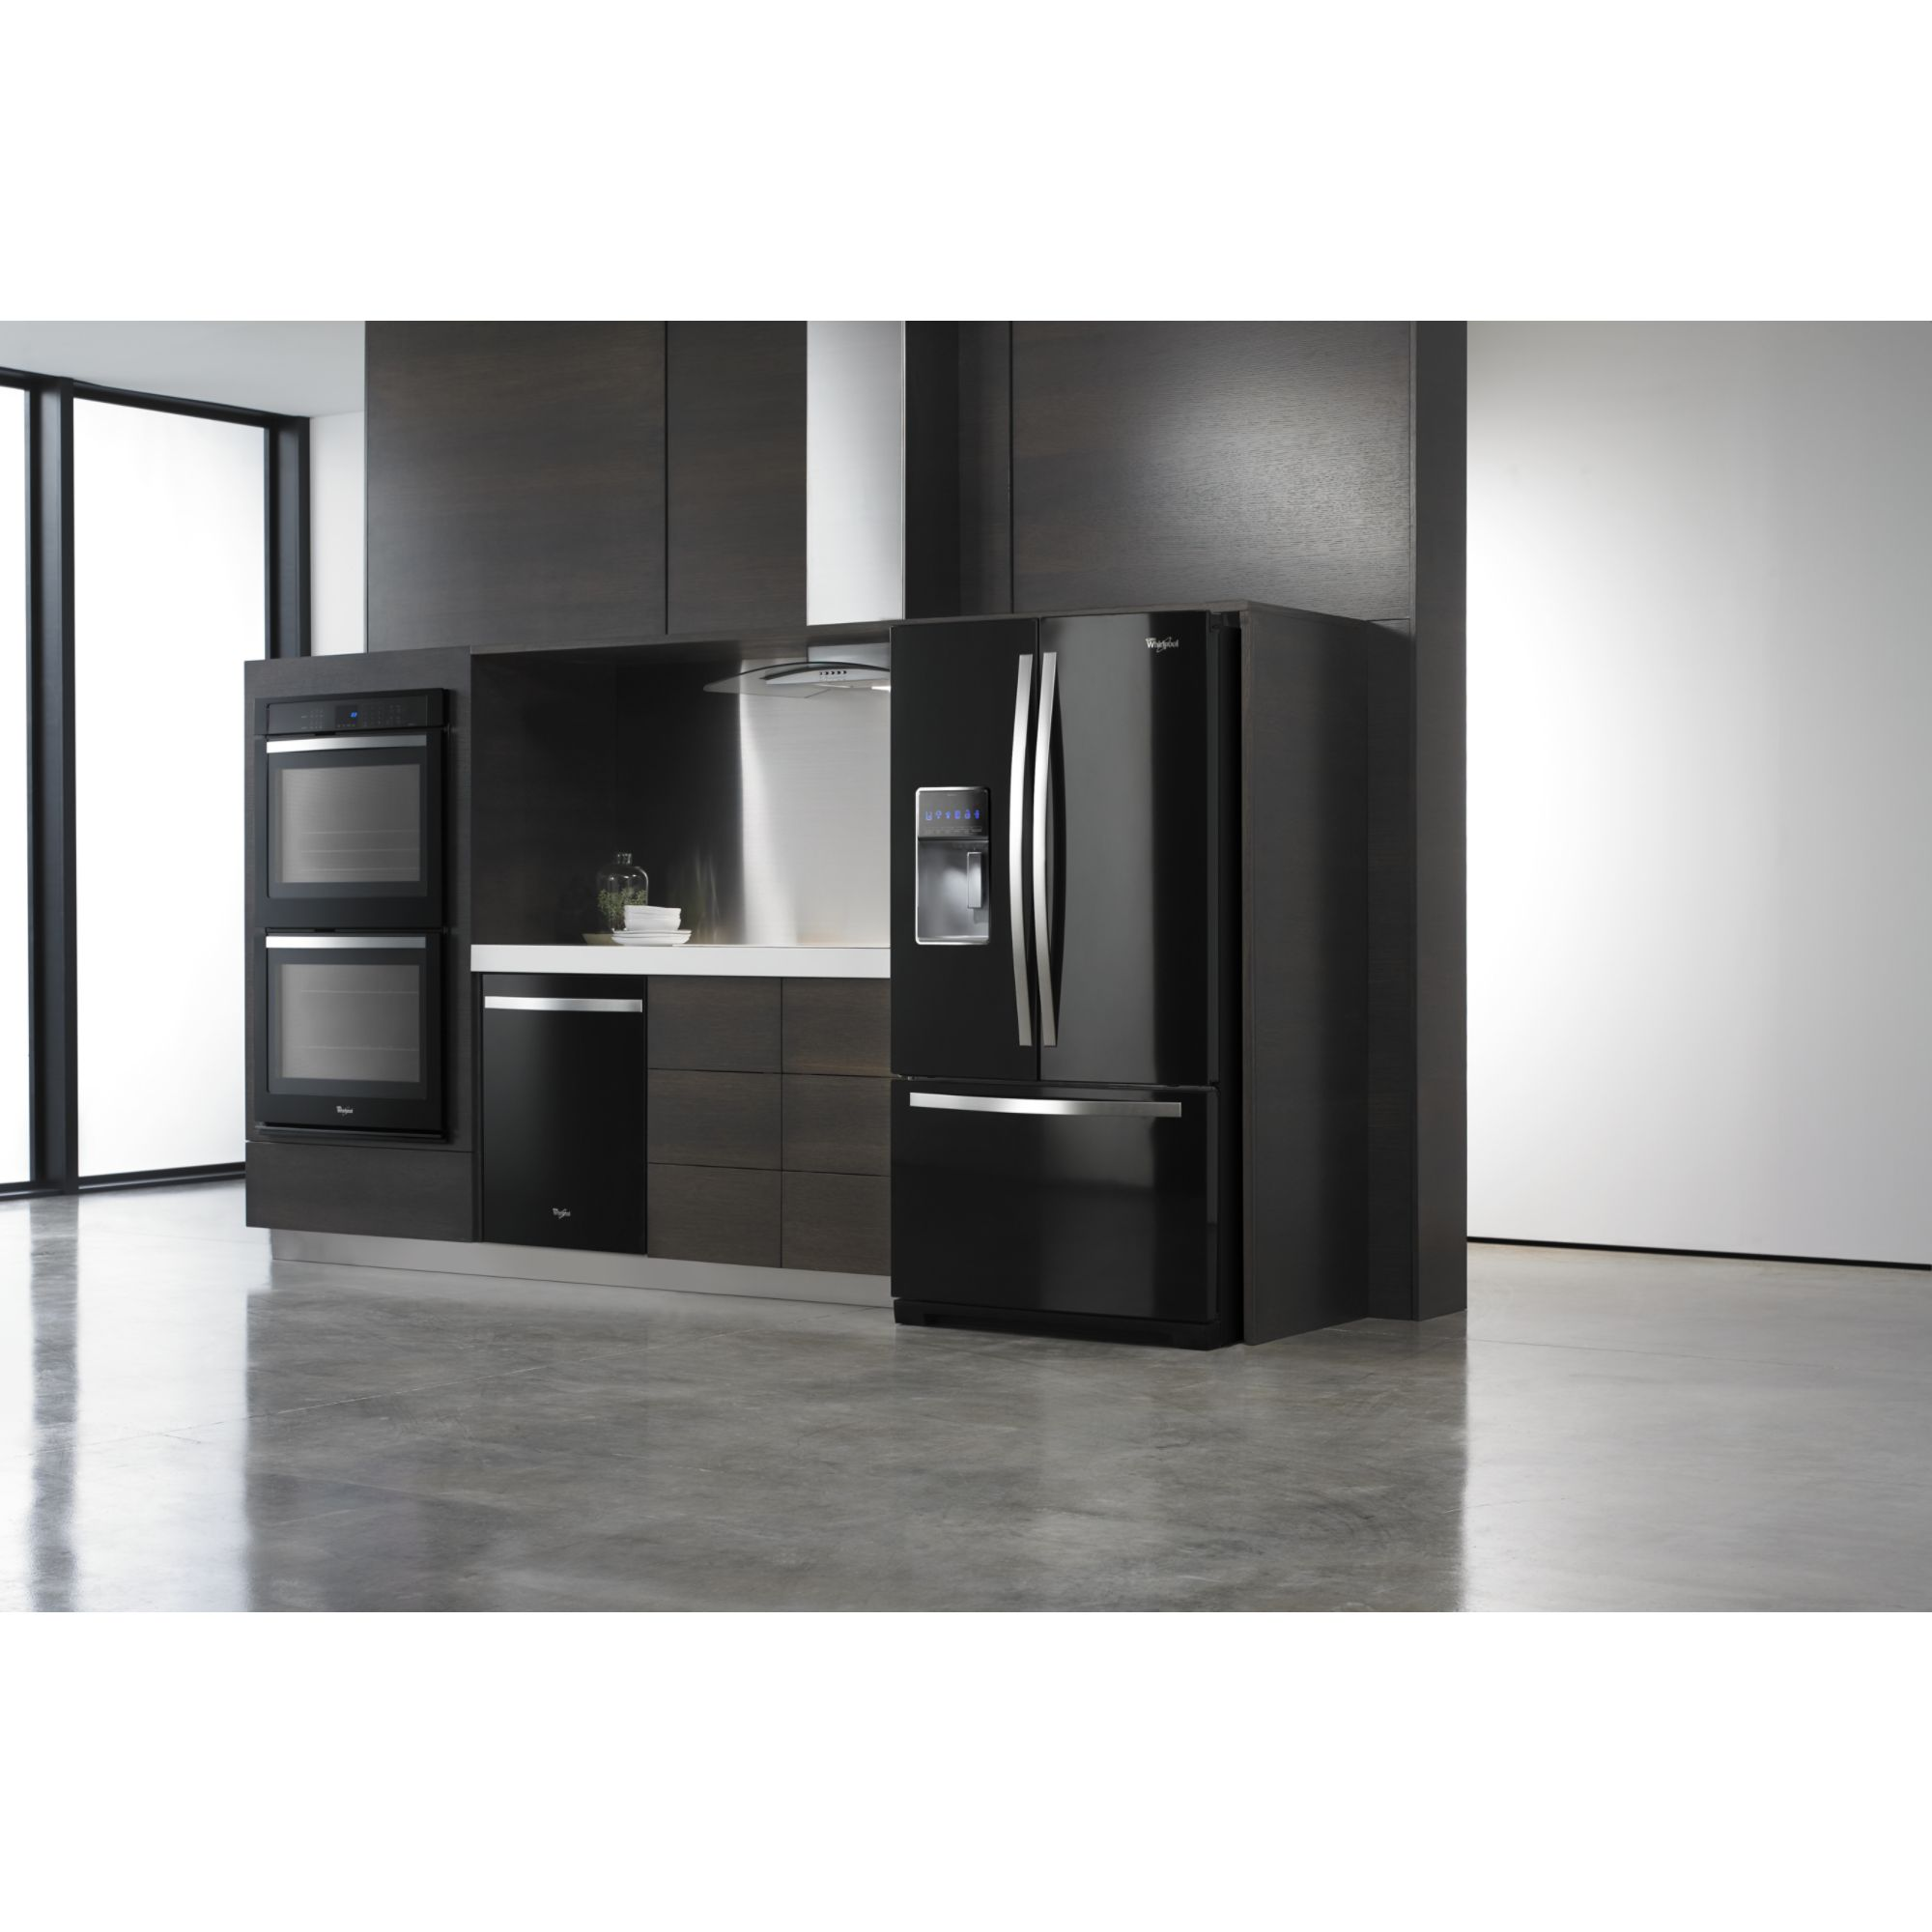 Whirlpool Gold 27 cu. ft. French Door Refrigerator  - Black Ice